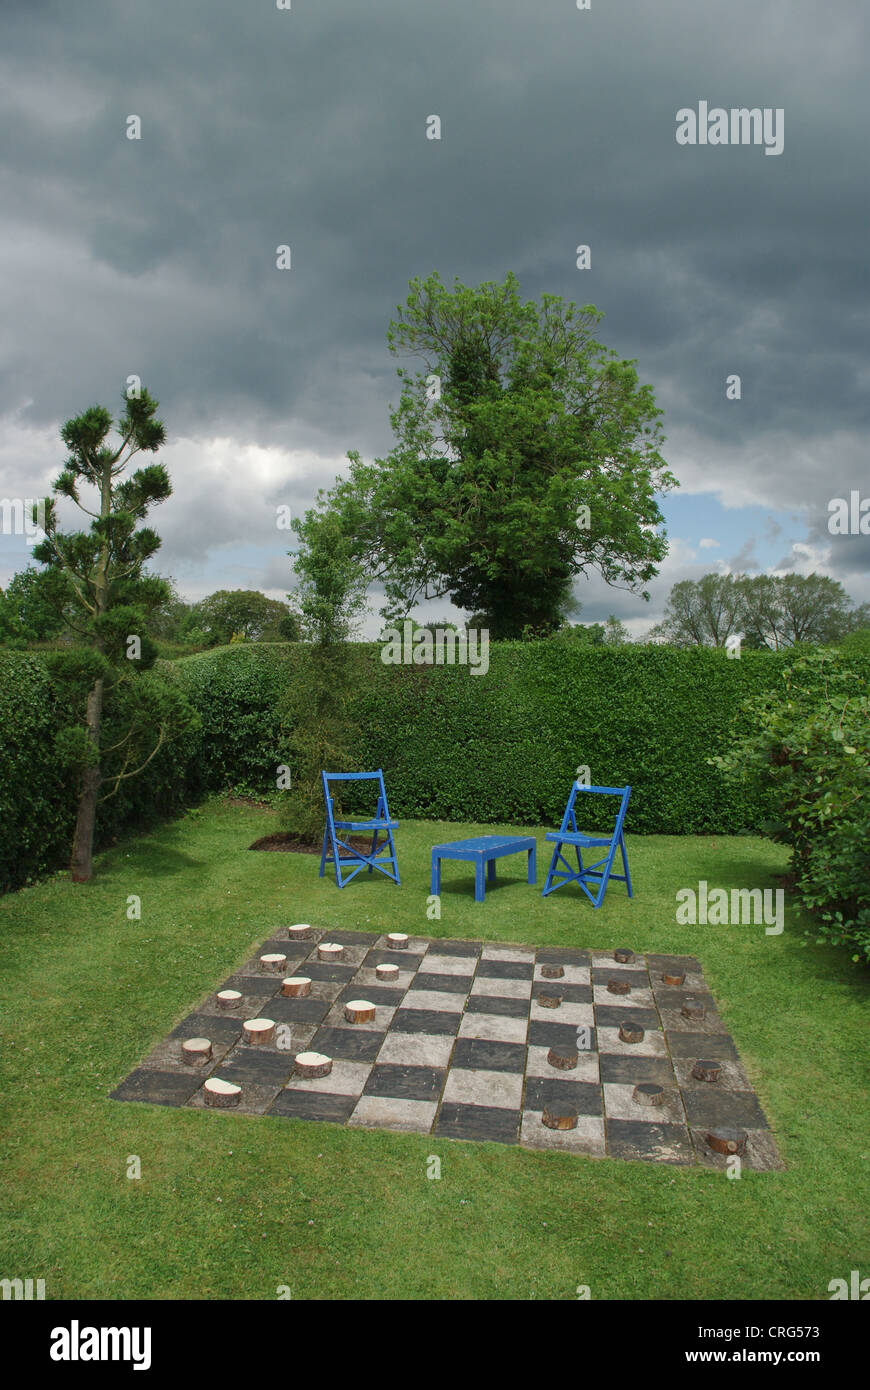 Giant draughts game, made of wood, set into a lawn in an English Country garden - Stock Image